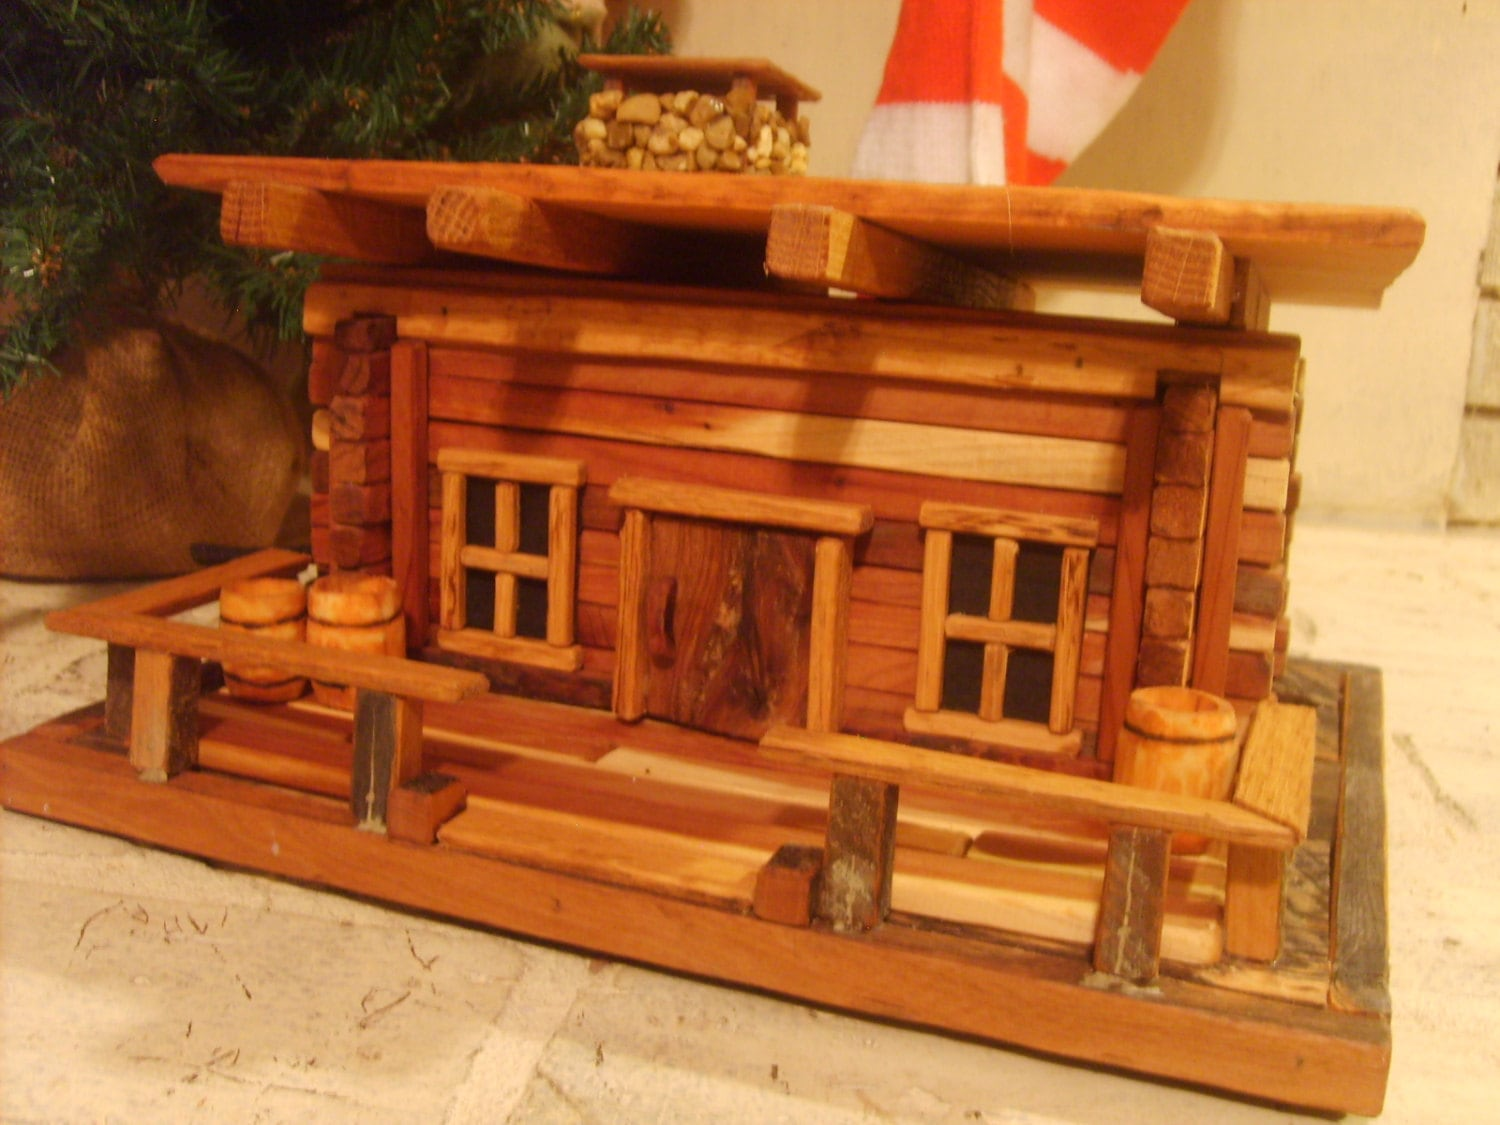 rustic log cabin birdhouses - photo #8